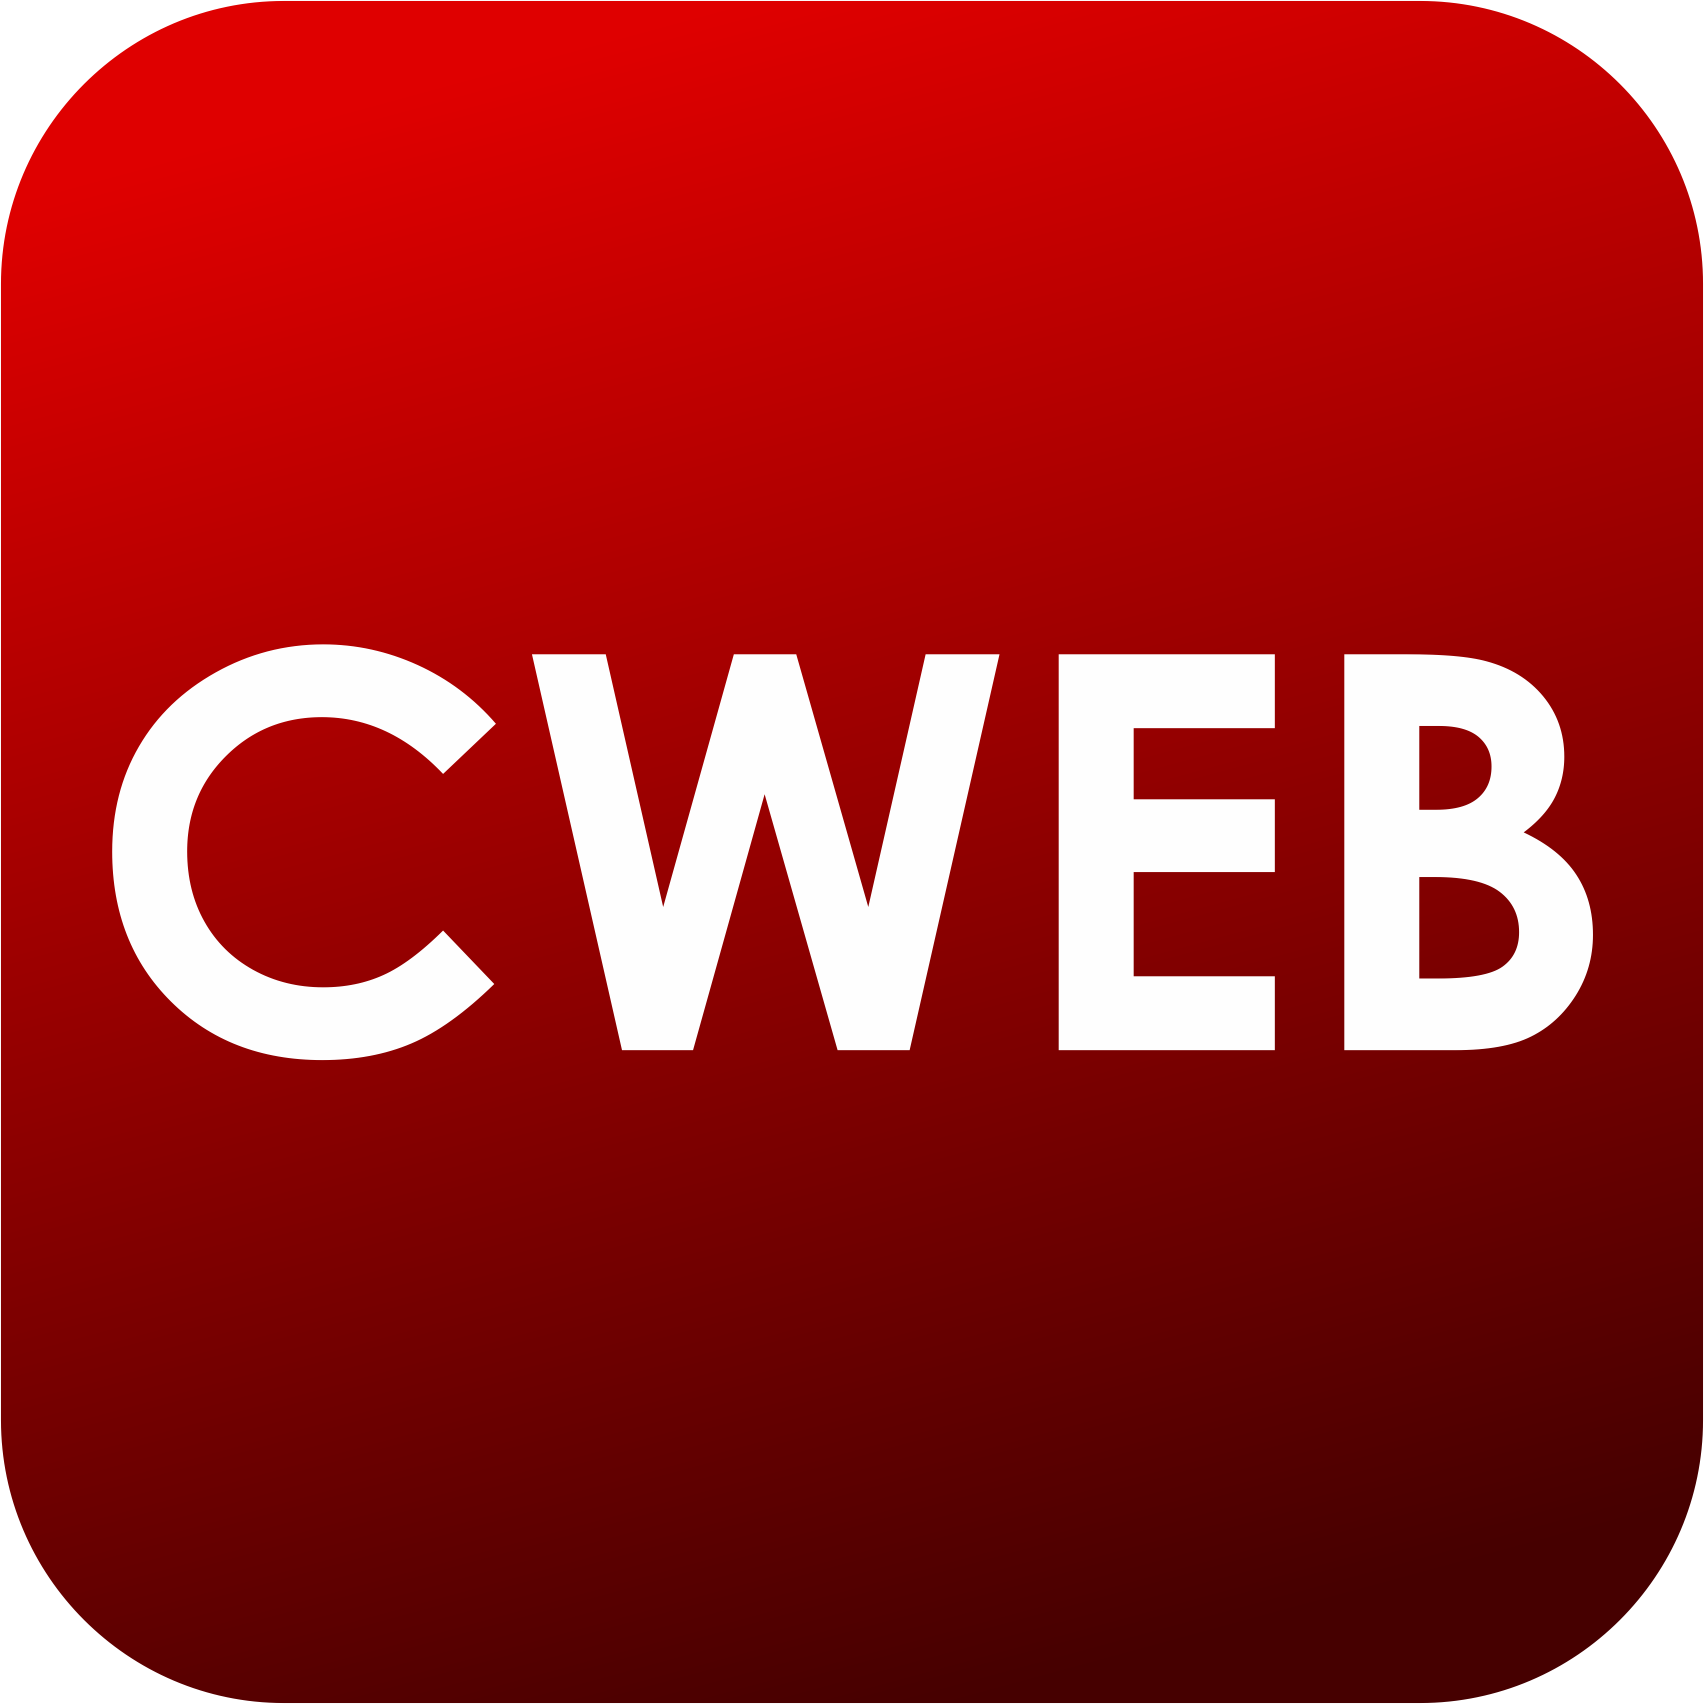 CWEB.com - Trending News, Business News, Shopping Deals, Videos